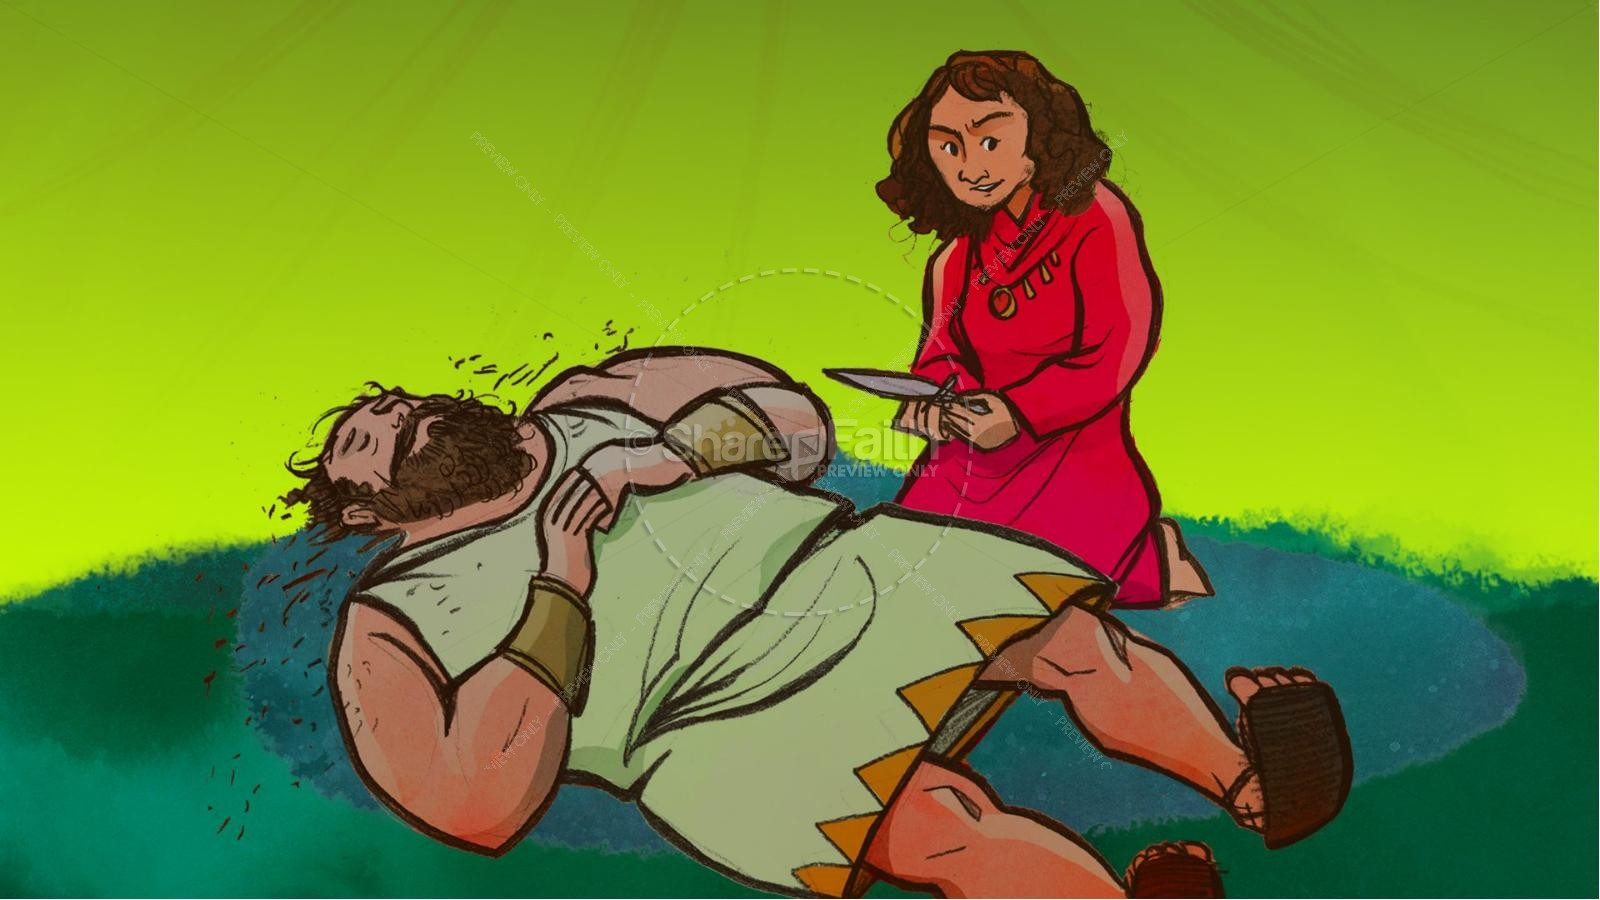 Samson and Delilah Kids Bible Stories | slide 14